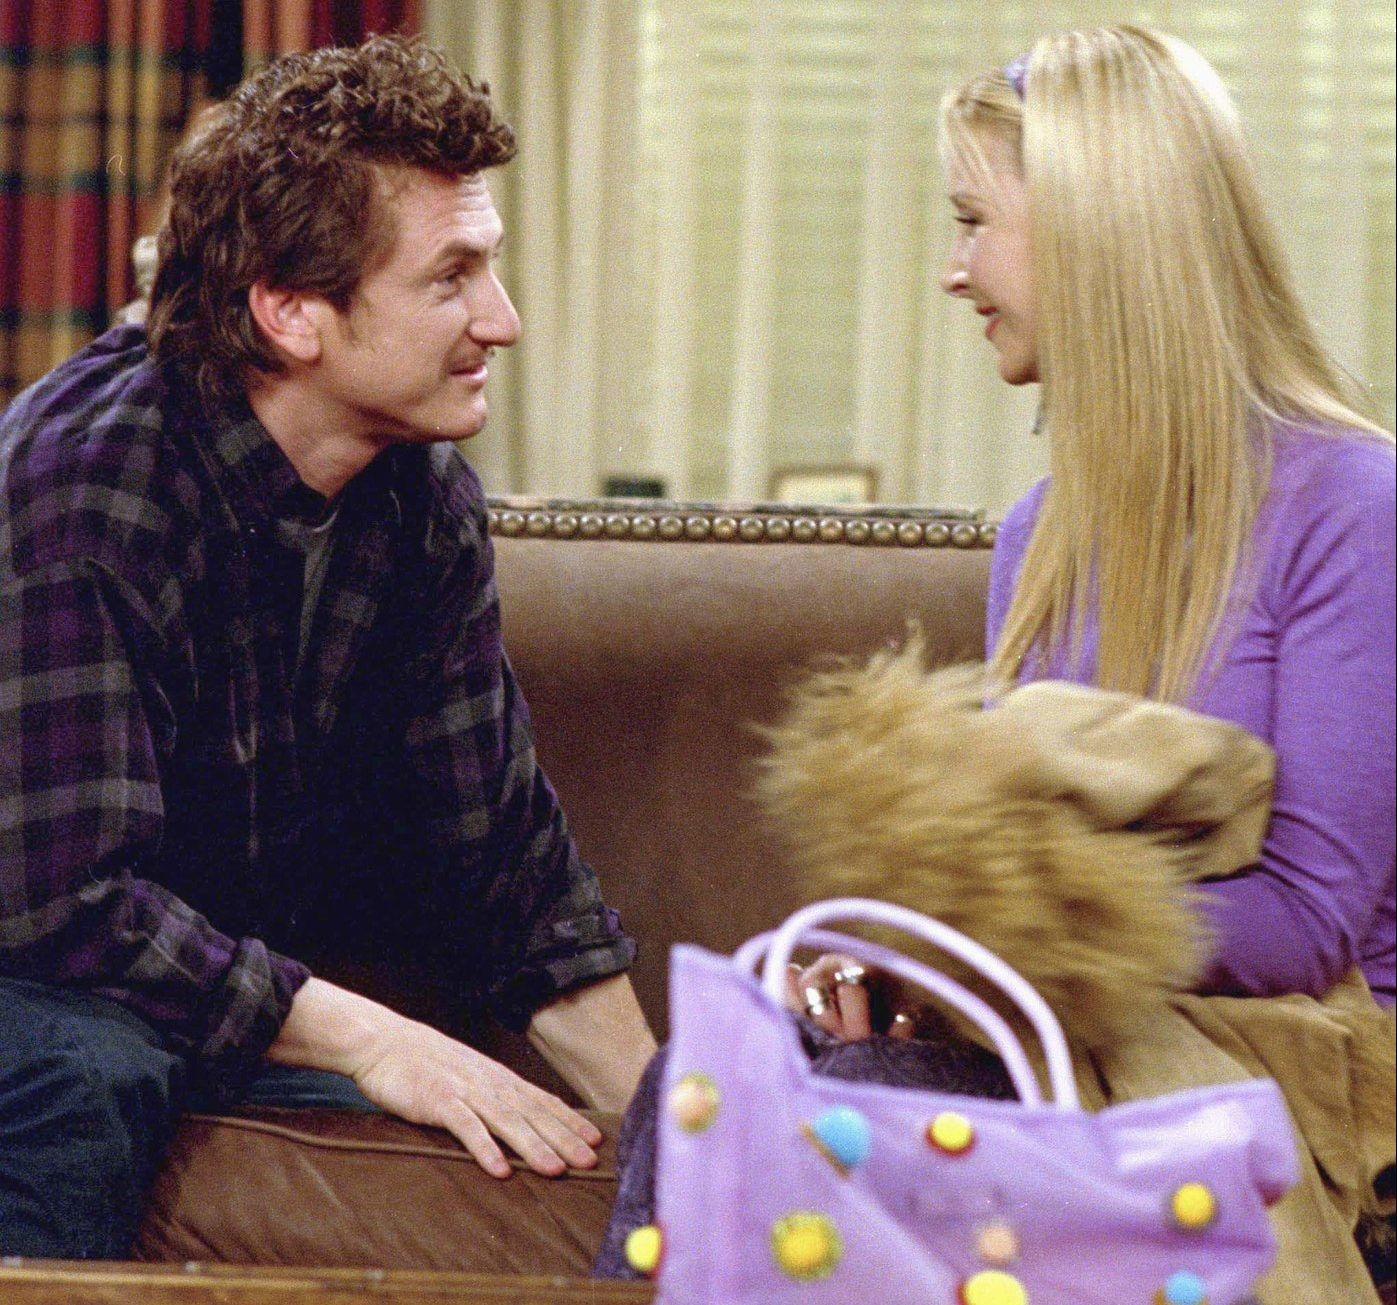 23 7 e1603449593874 20 Of The Best Celebrity Cameo Appearances On Friends